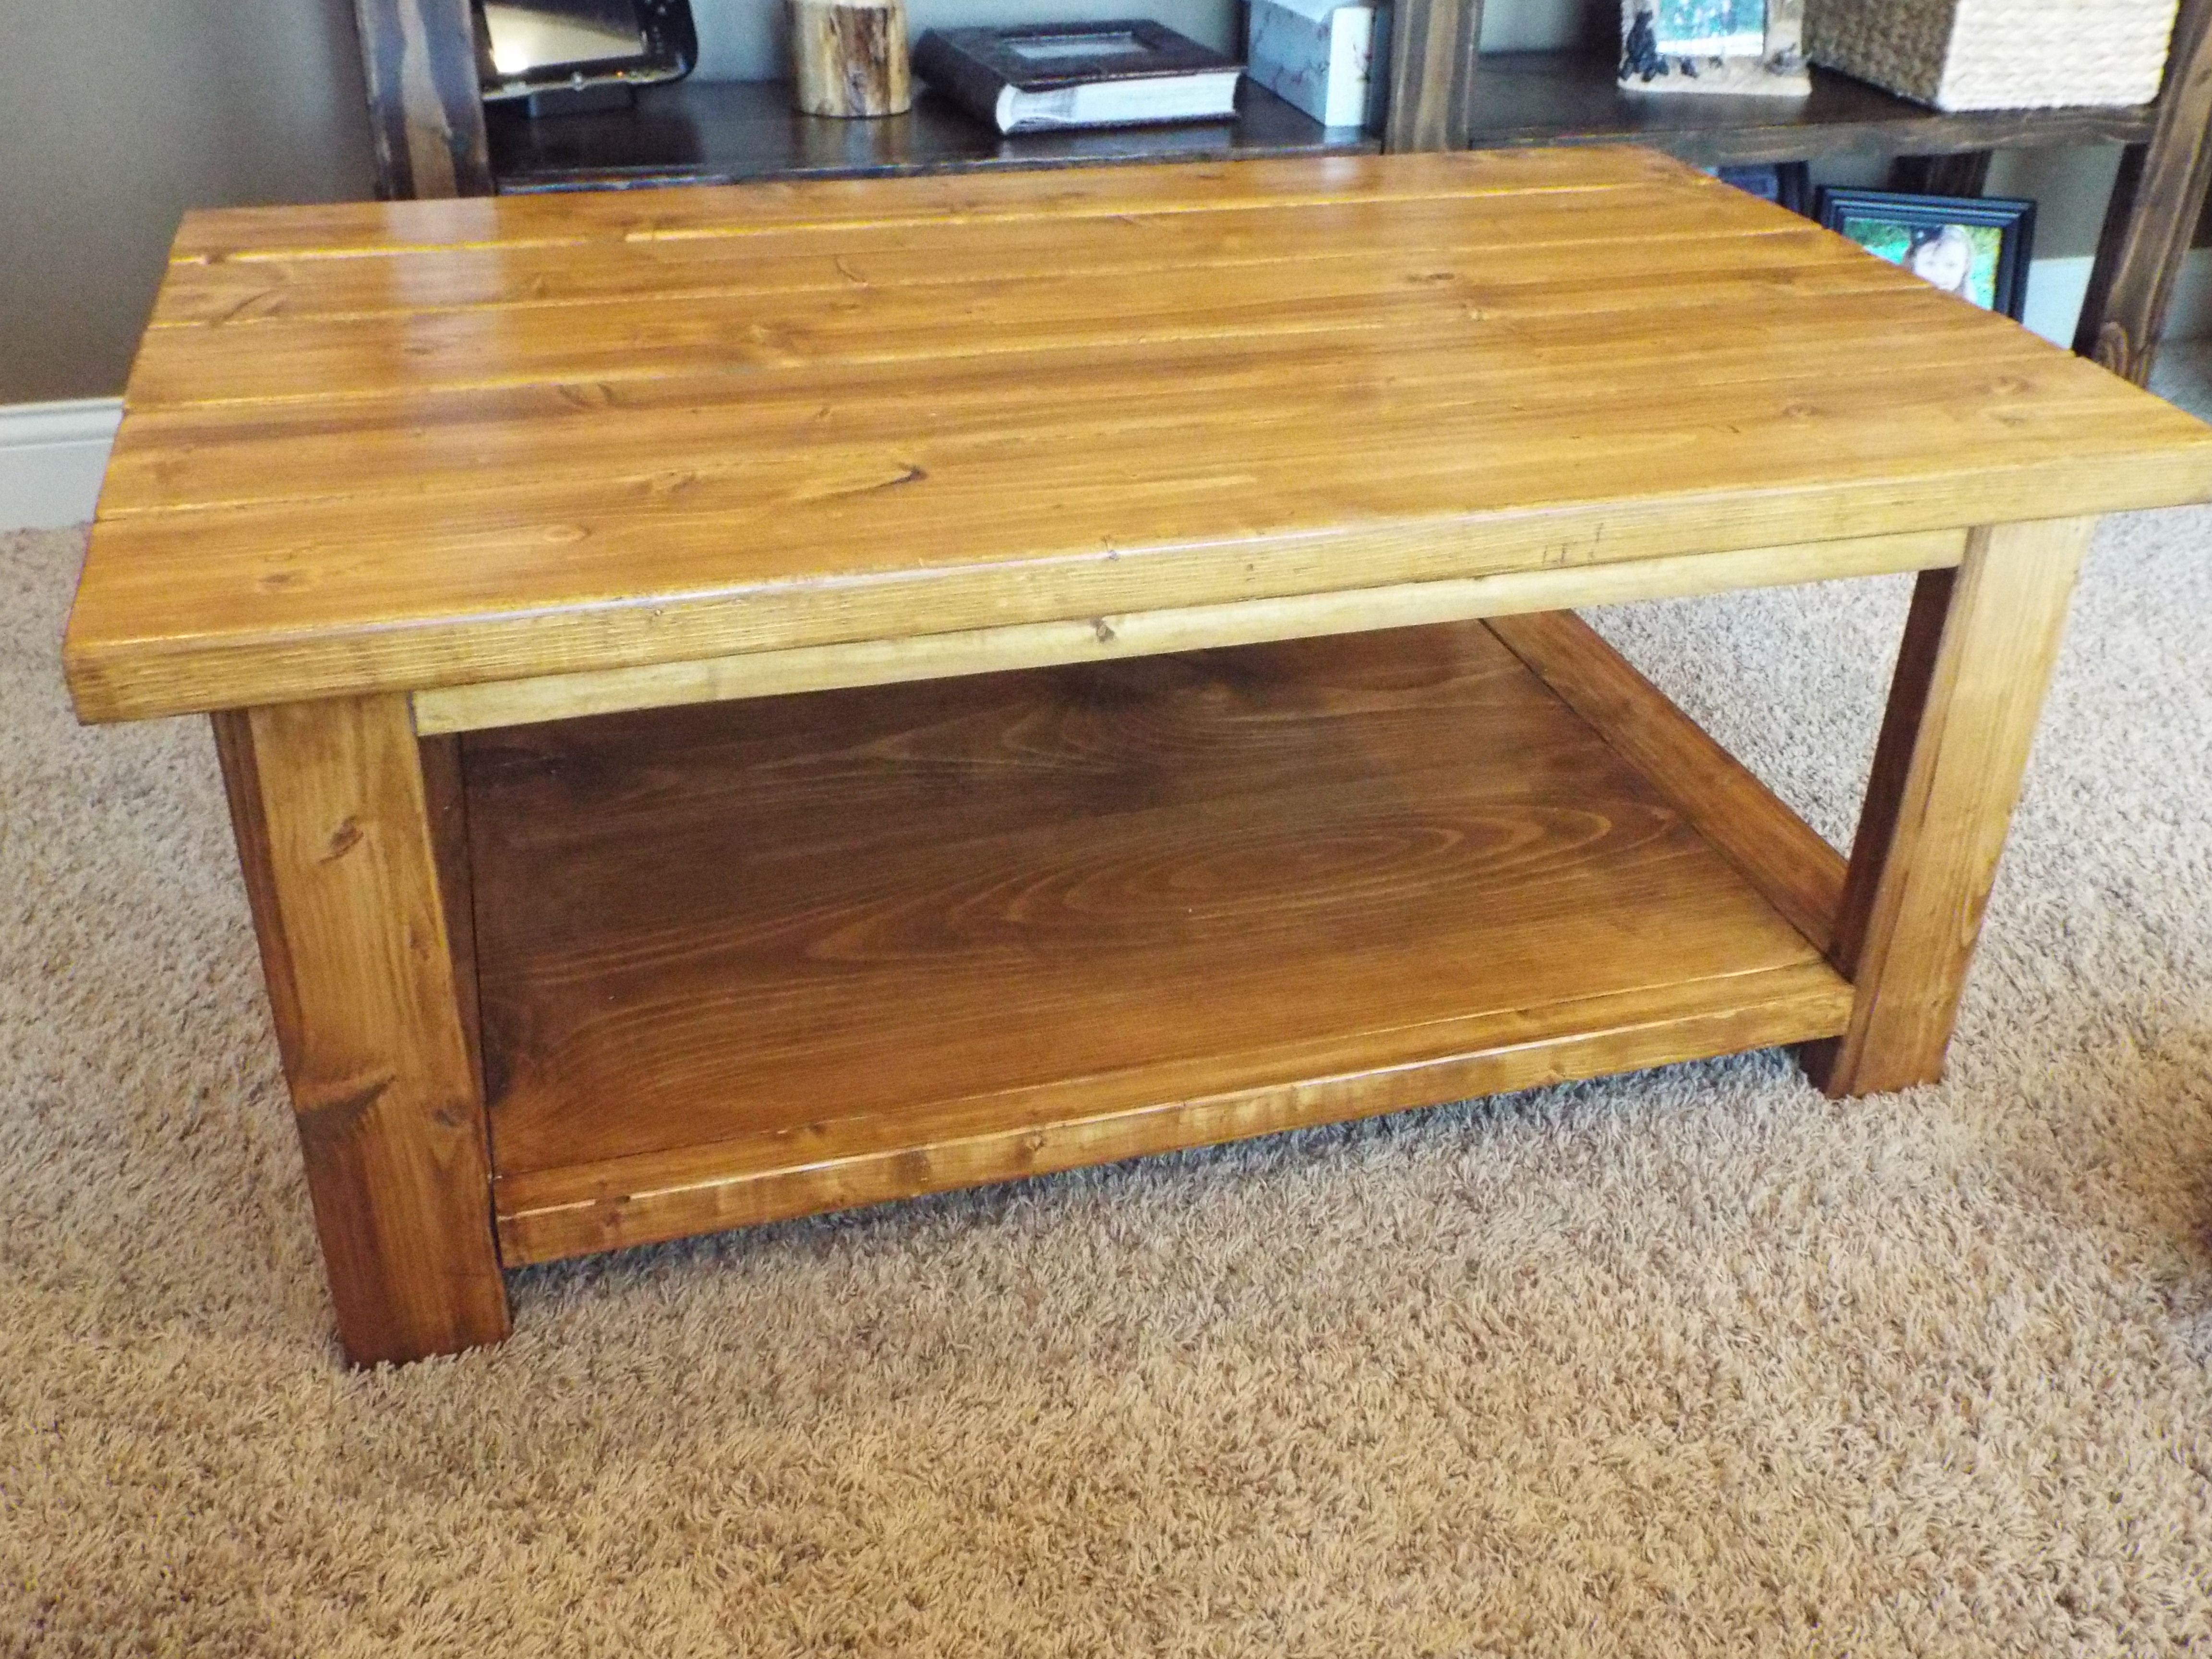 Pine Pineandpaper Pine Coffee Table Coffee Table Plans Coffee Table Wood